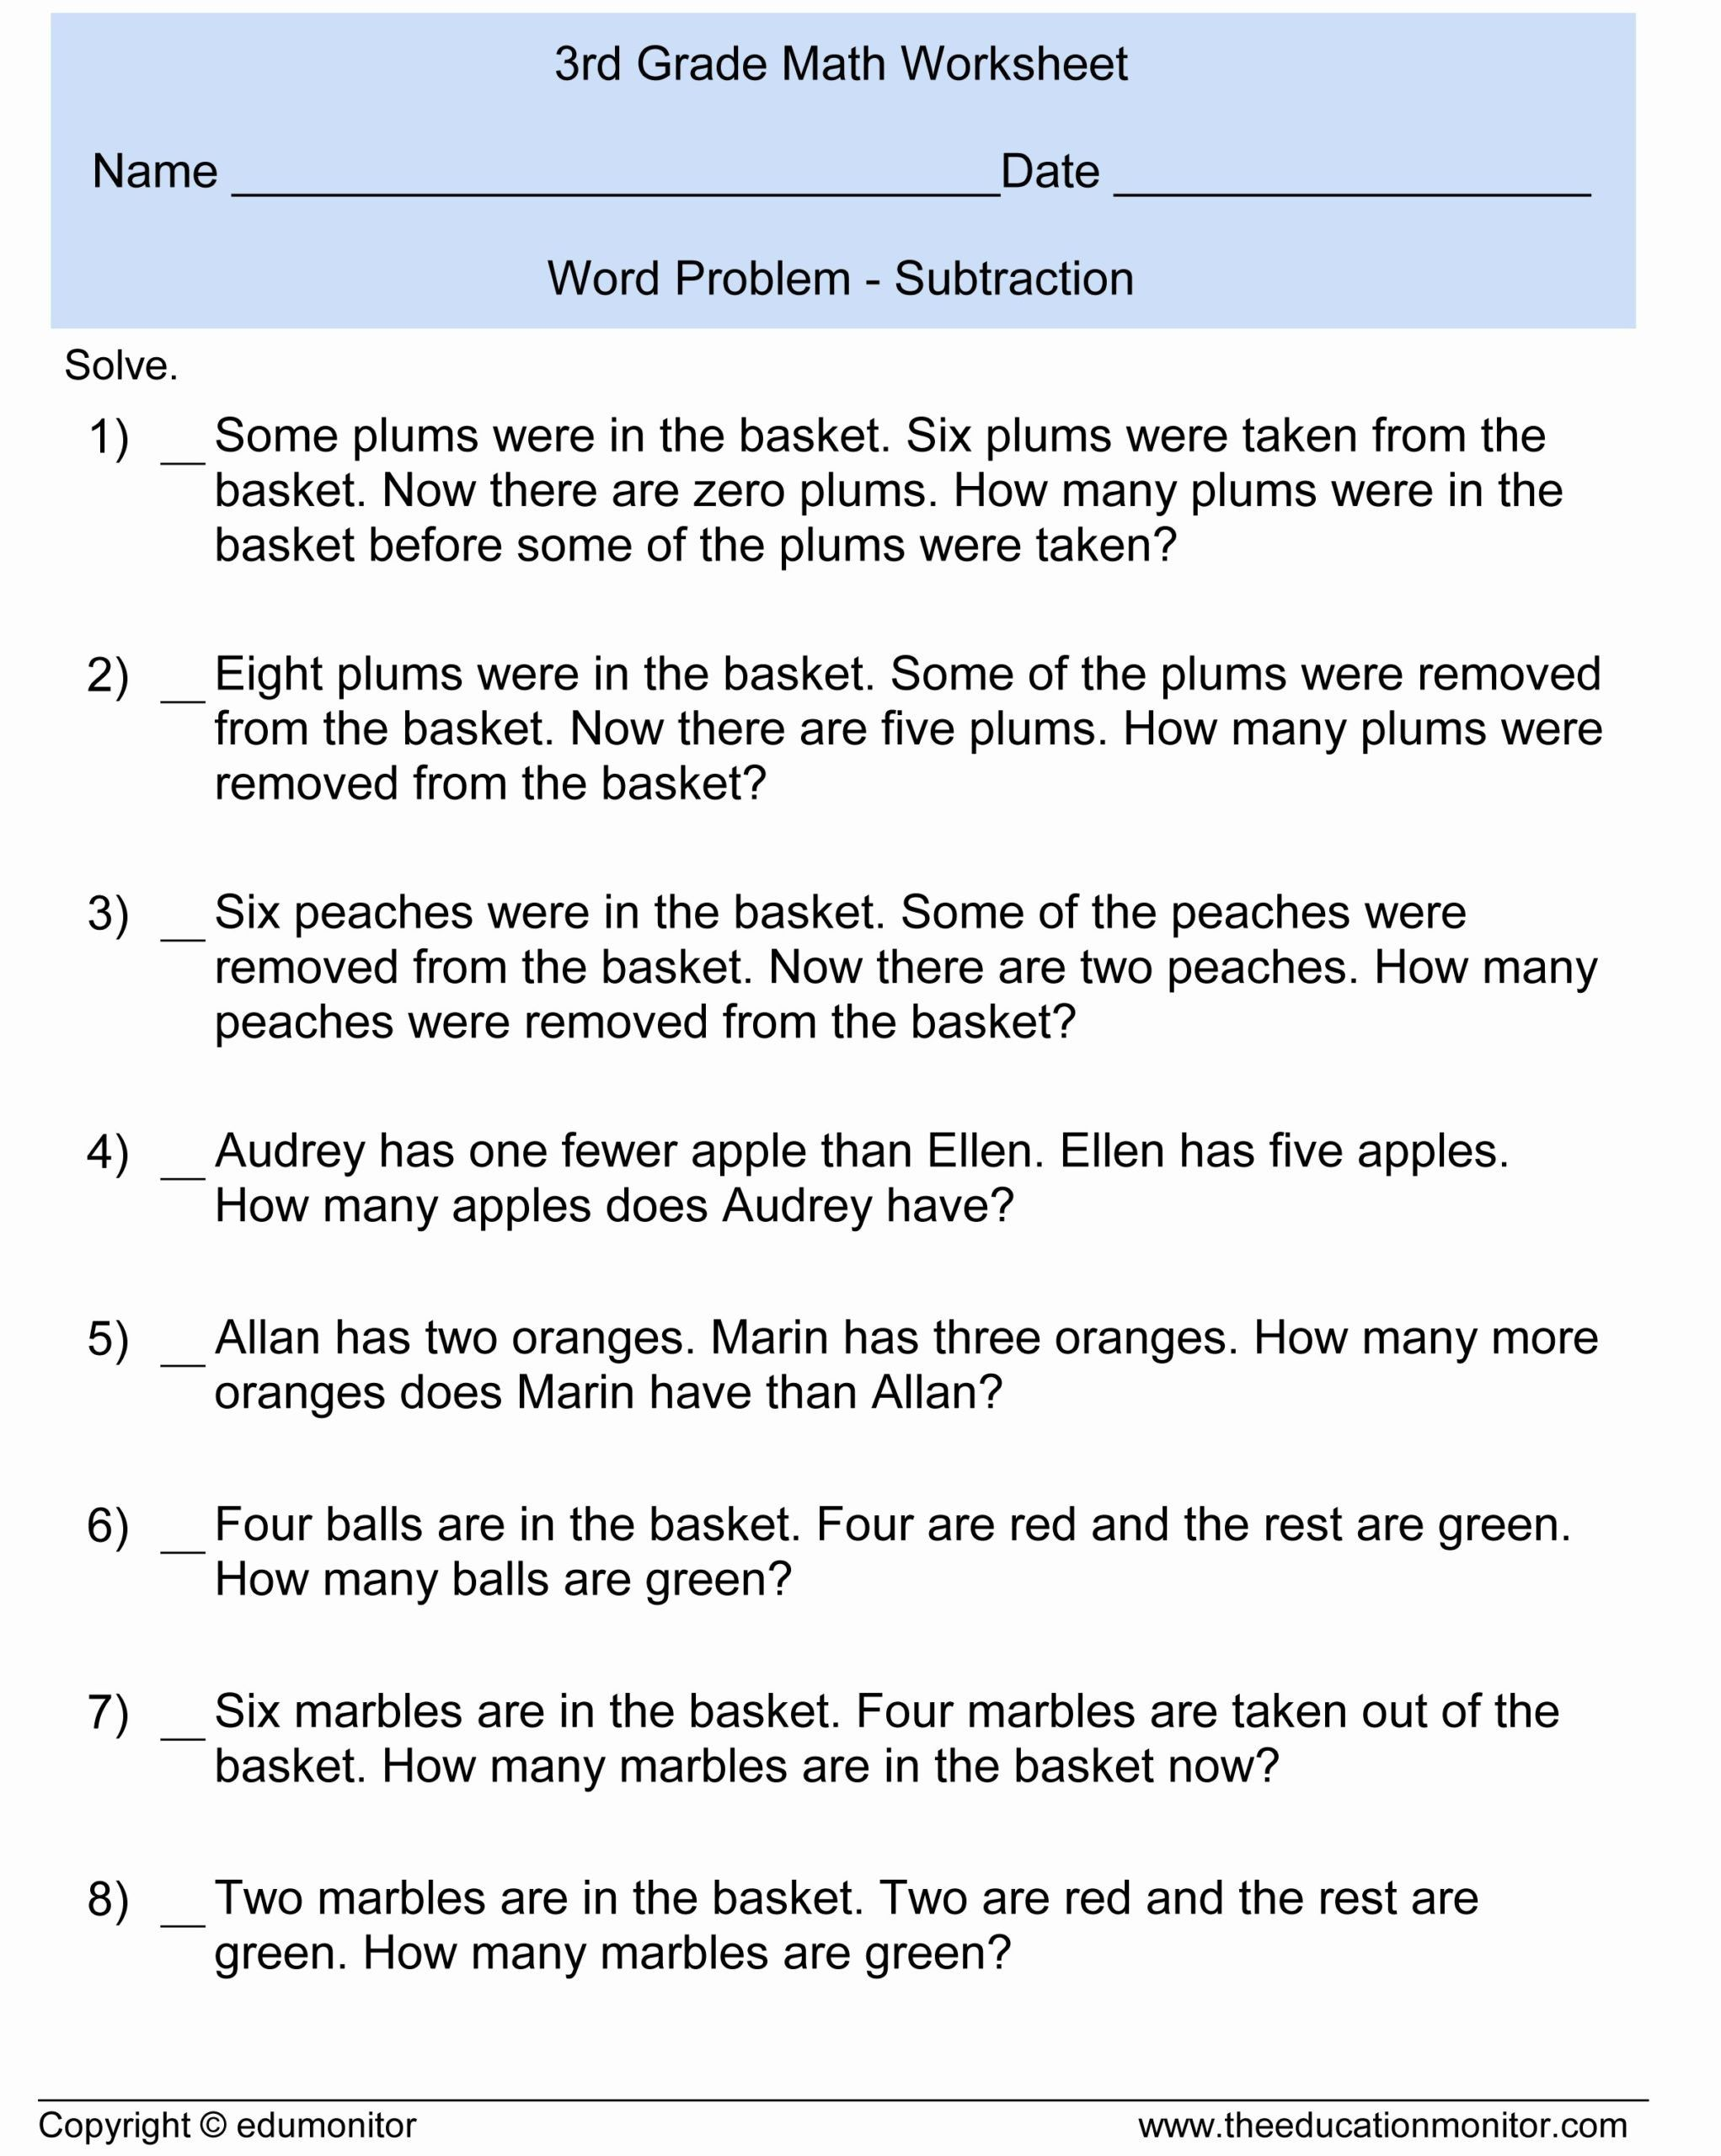 small resolution of Multi Step Math Word Problems Worksheets   Printable Worksheets and  Activities for Teachers